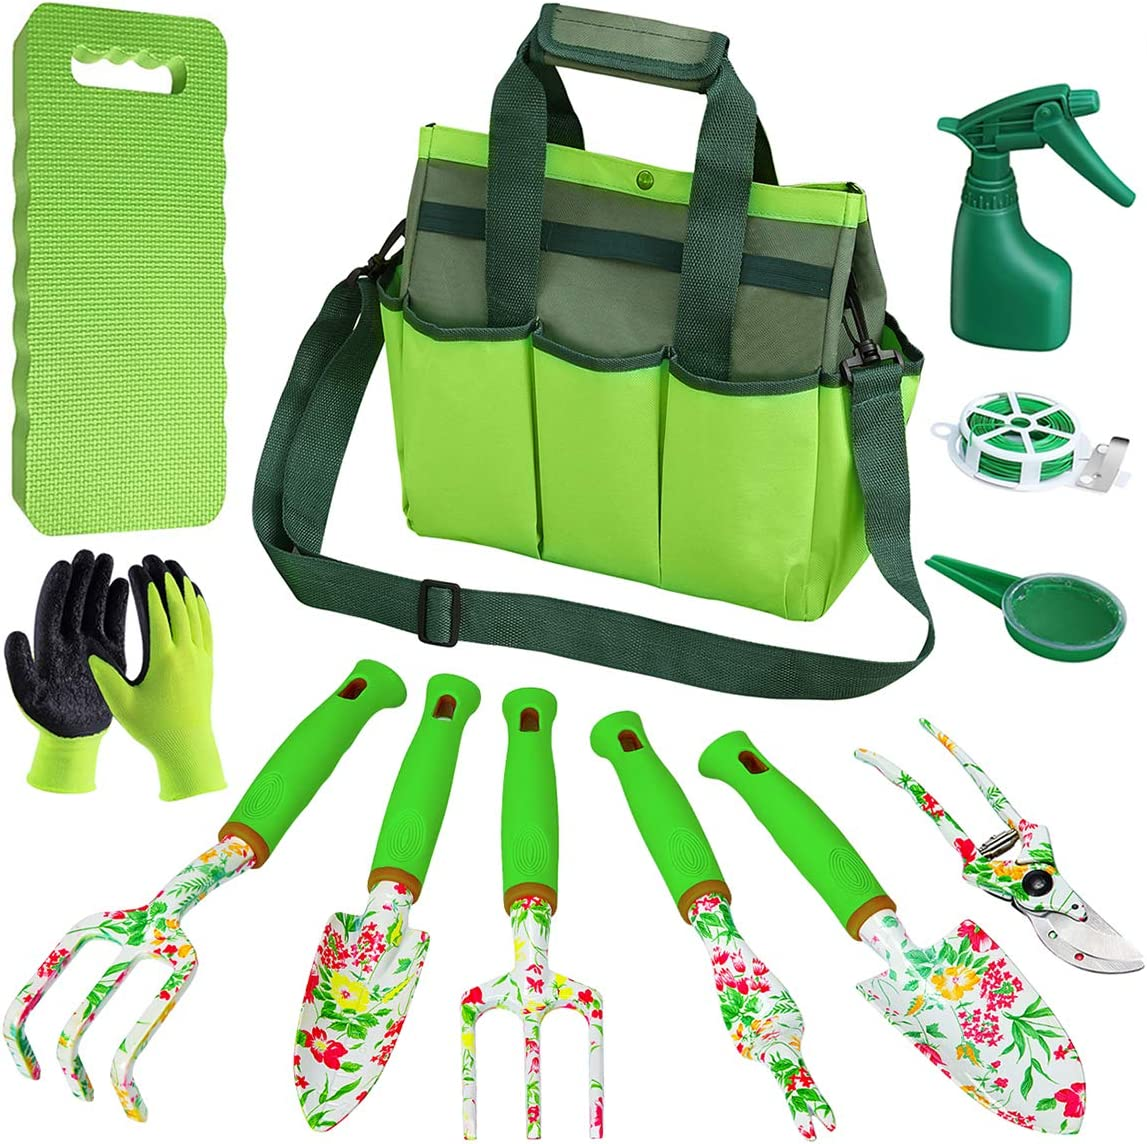 ROHOO Garden Tool Set,Heavy Duty Gardening Tools Kit for Men and Women with Hand Tote Shoulder Bag Gardening Supplies,Gardening Gifts for Gardener